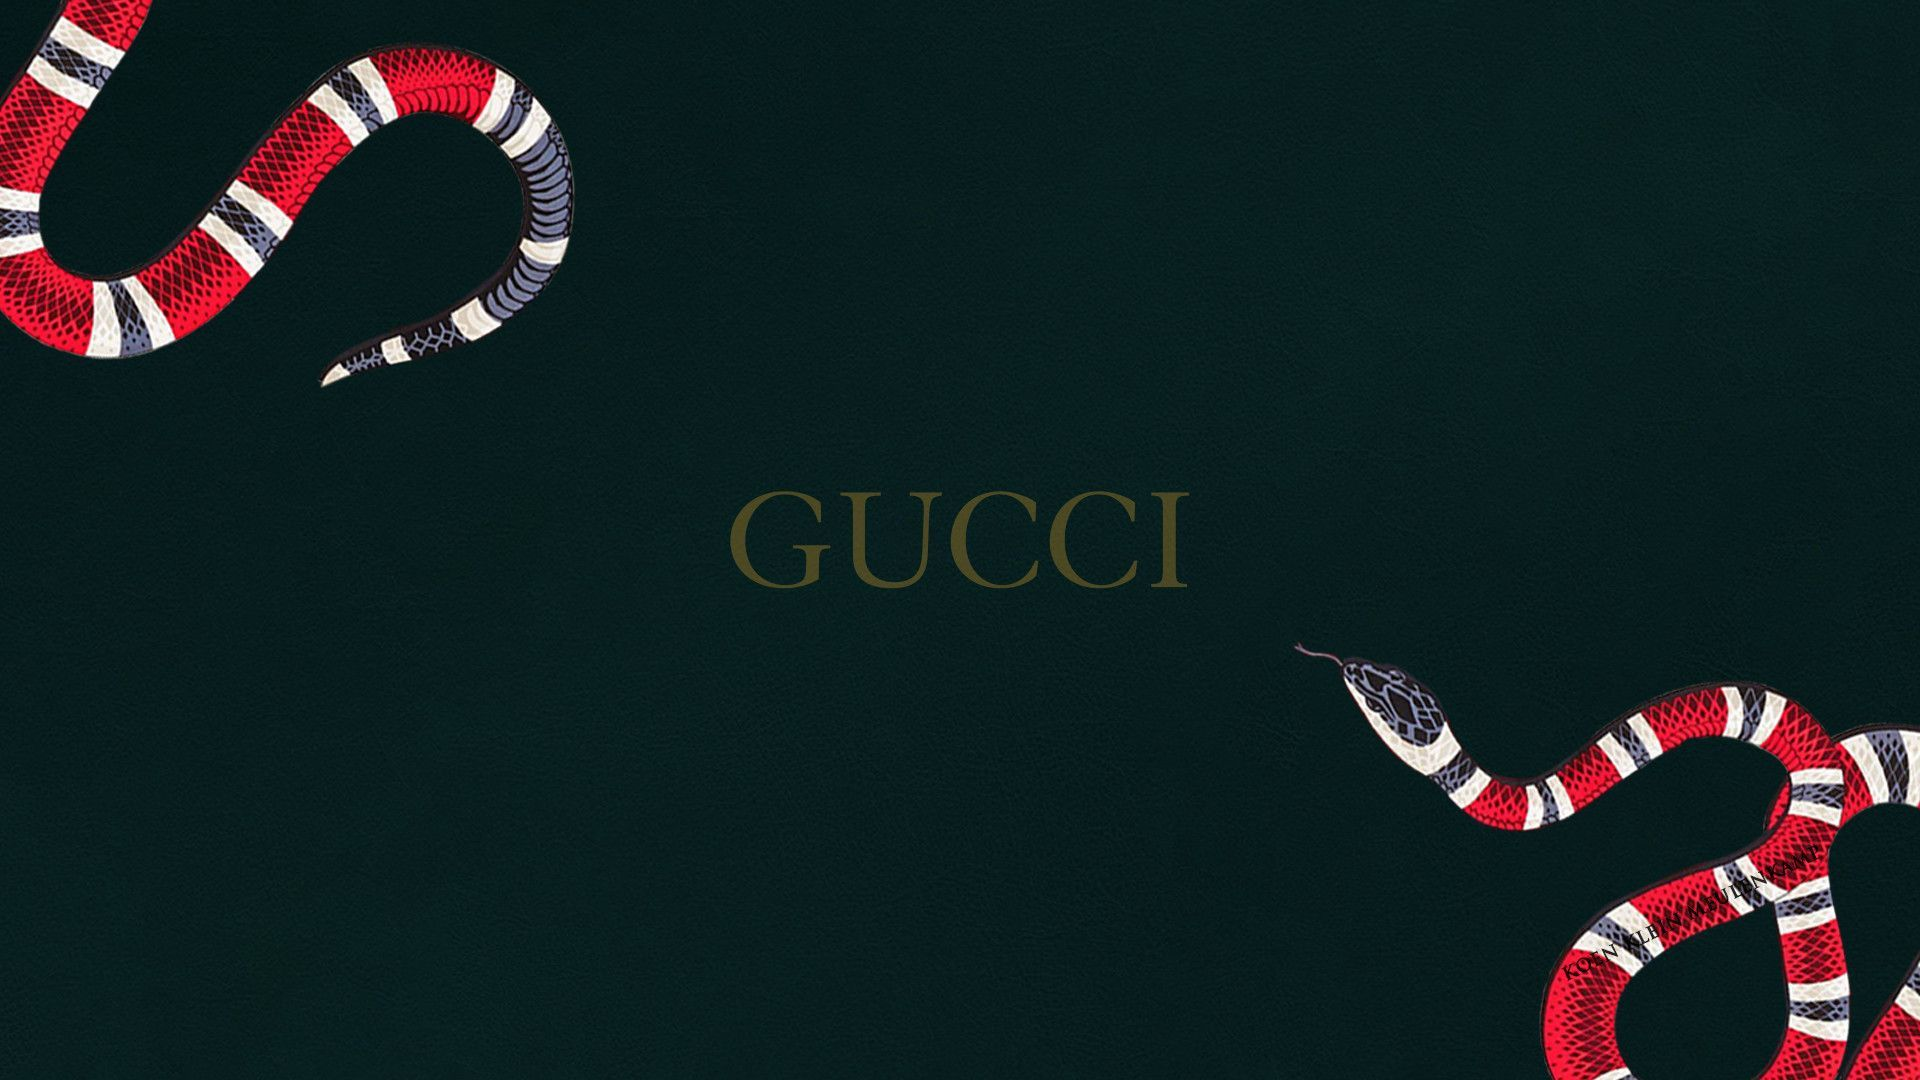 Laptob Supreme Gucci Wallpapers Top Free Laptob Supreme